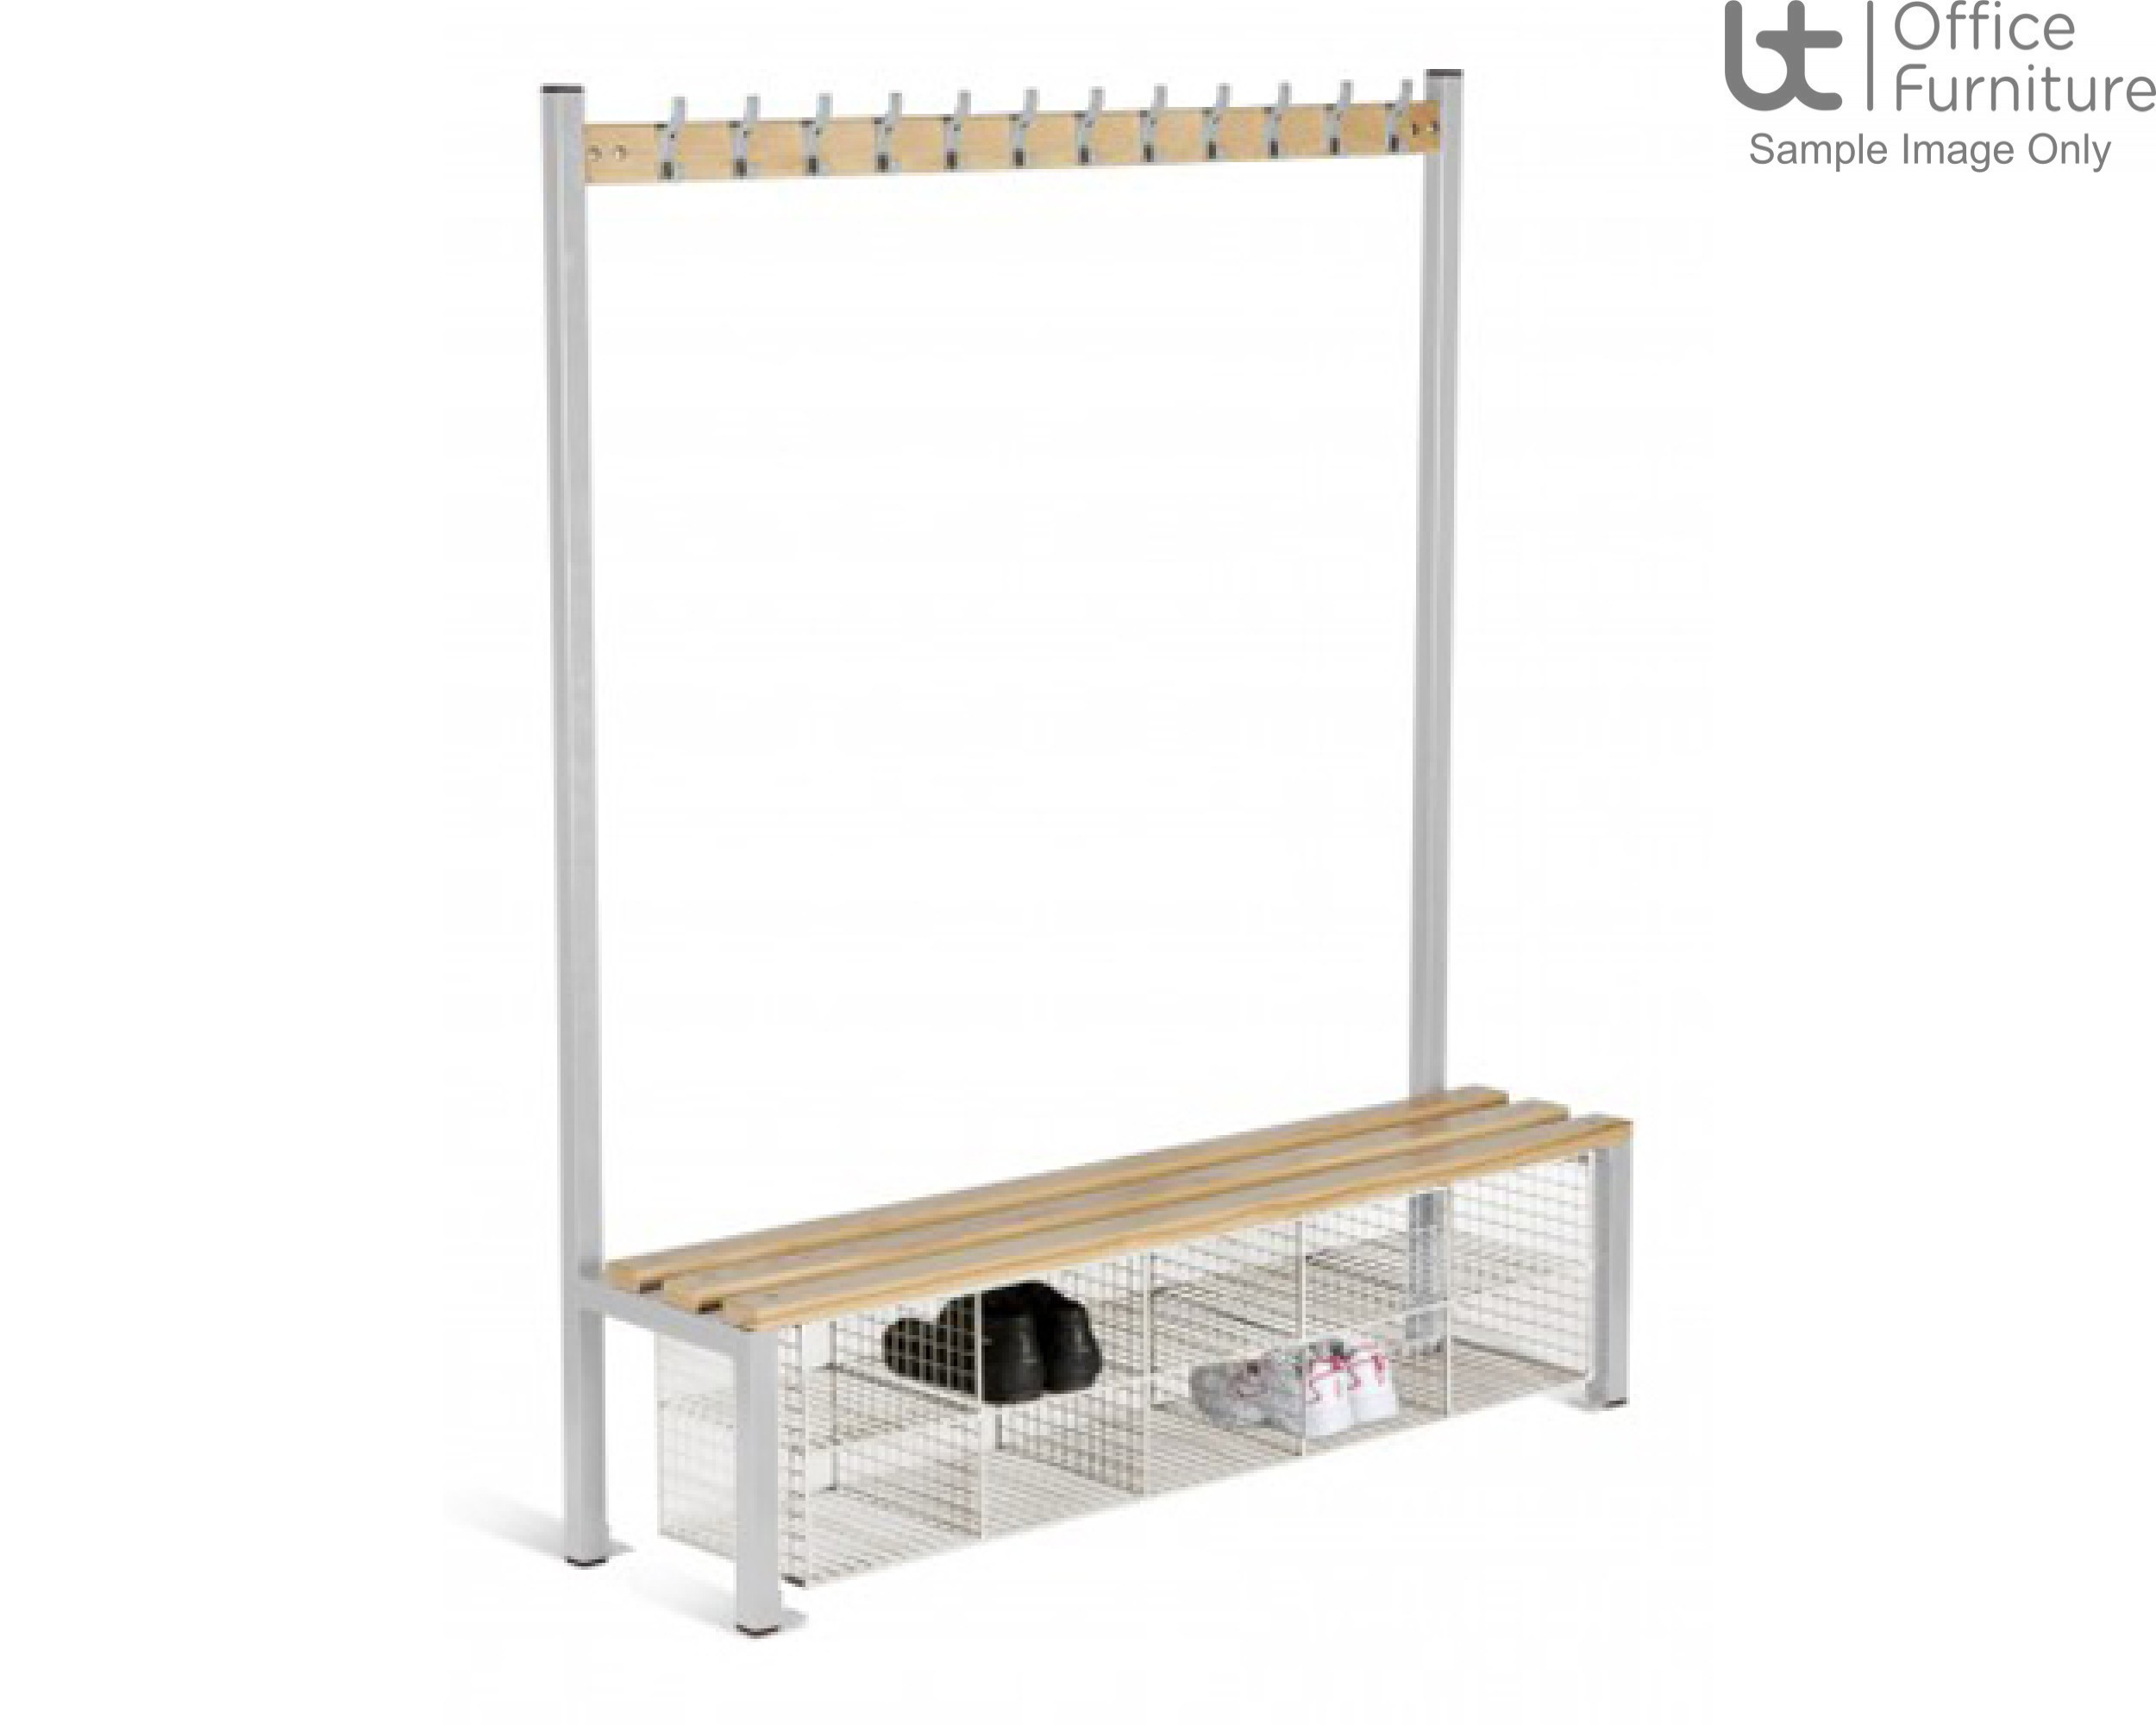 HOF Cloakroom Equipment - Single Sided Island Seating with Compartments